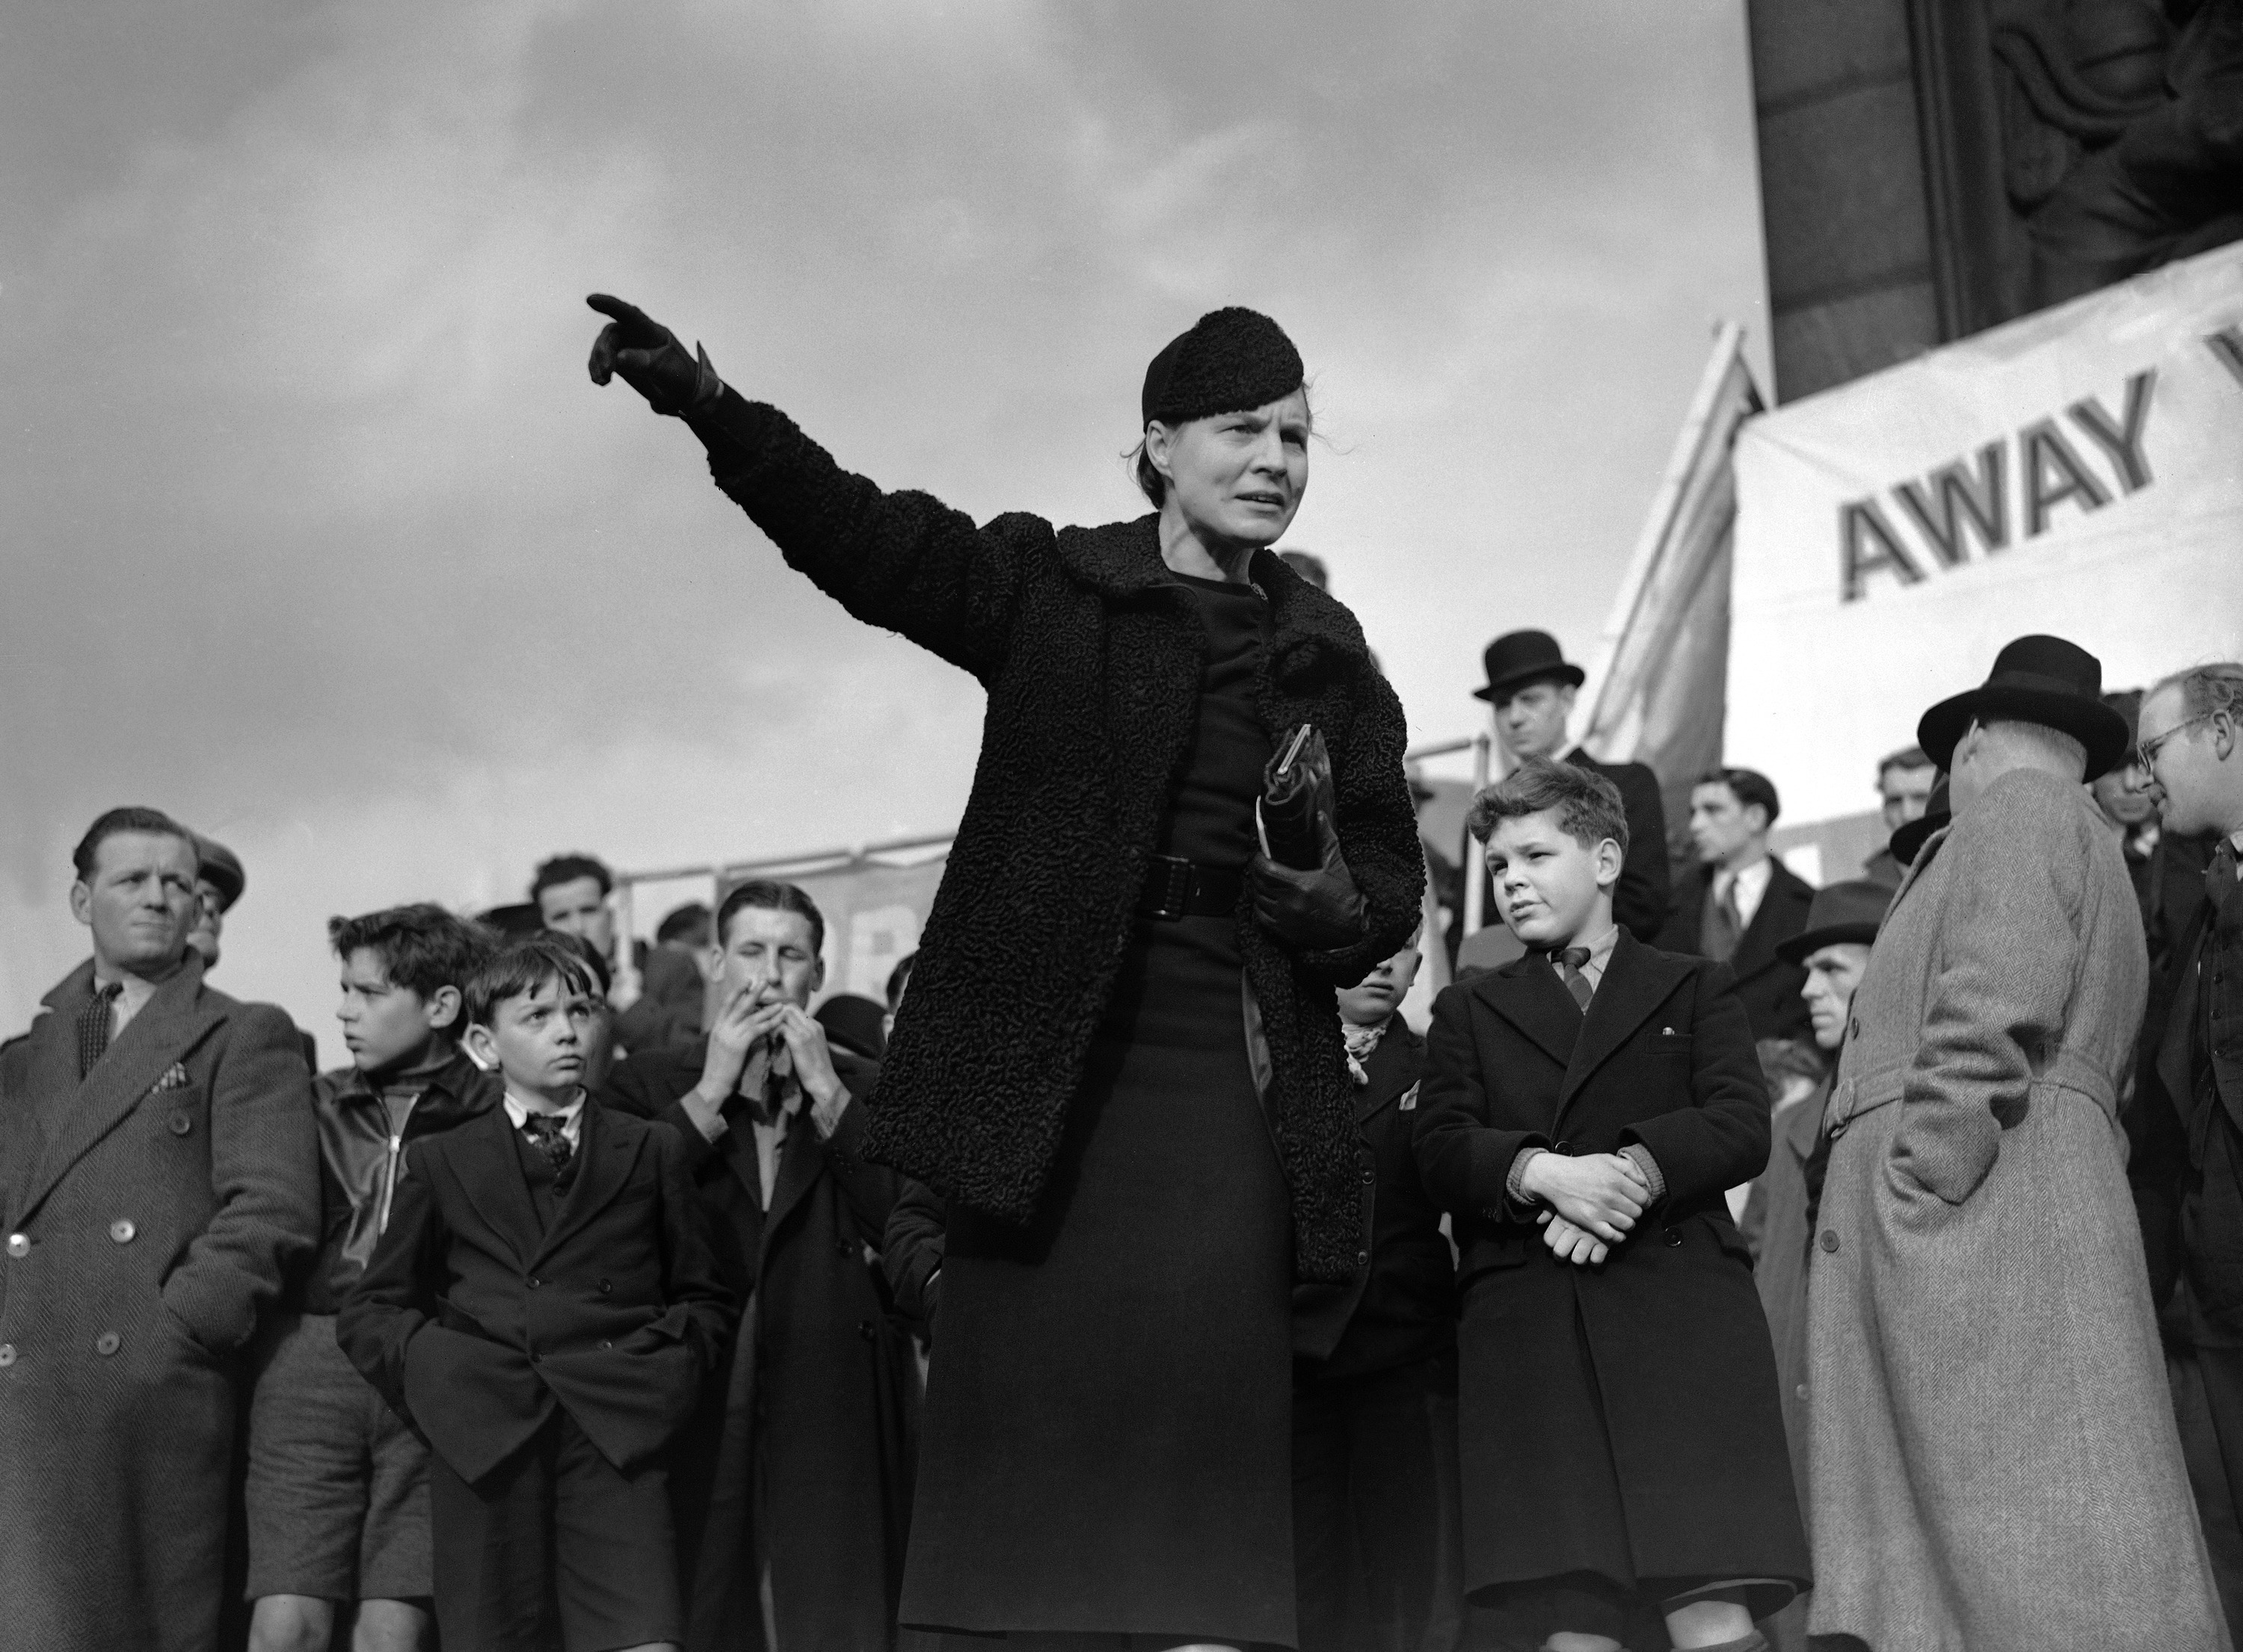 Some twenty members of parliament, peers, political candidates and trade union leaders addressed a master protest demonstration against the betrayal of Spanish democracy in Trafalgar Square on February 26. Dr. Edith Summerskill addressing the demonstration on Feb. 26, 1939 in Trafalgar Square, London.